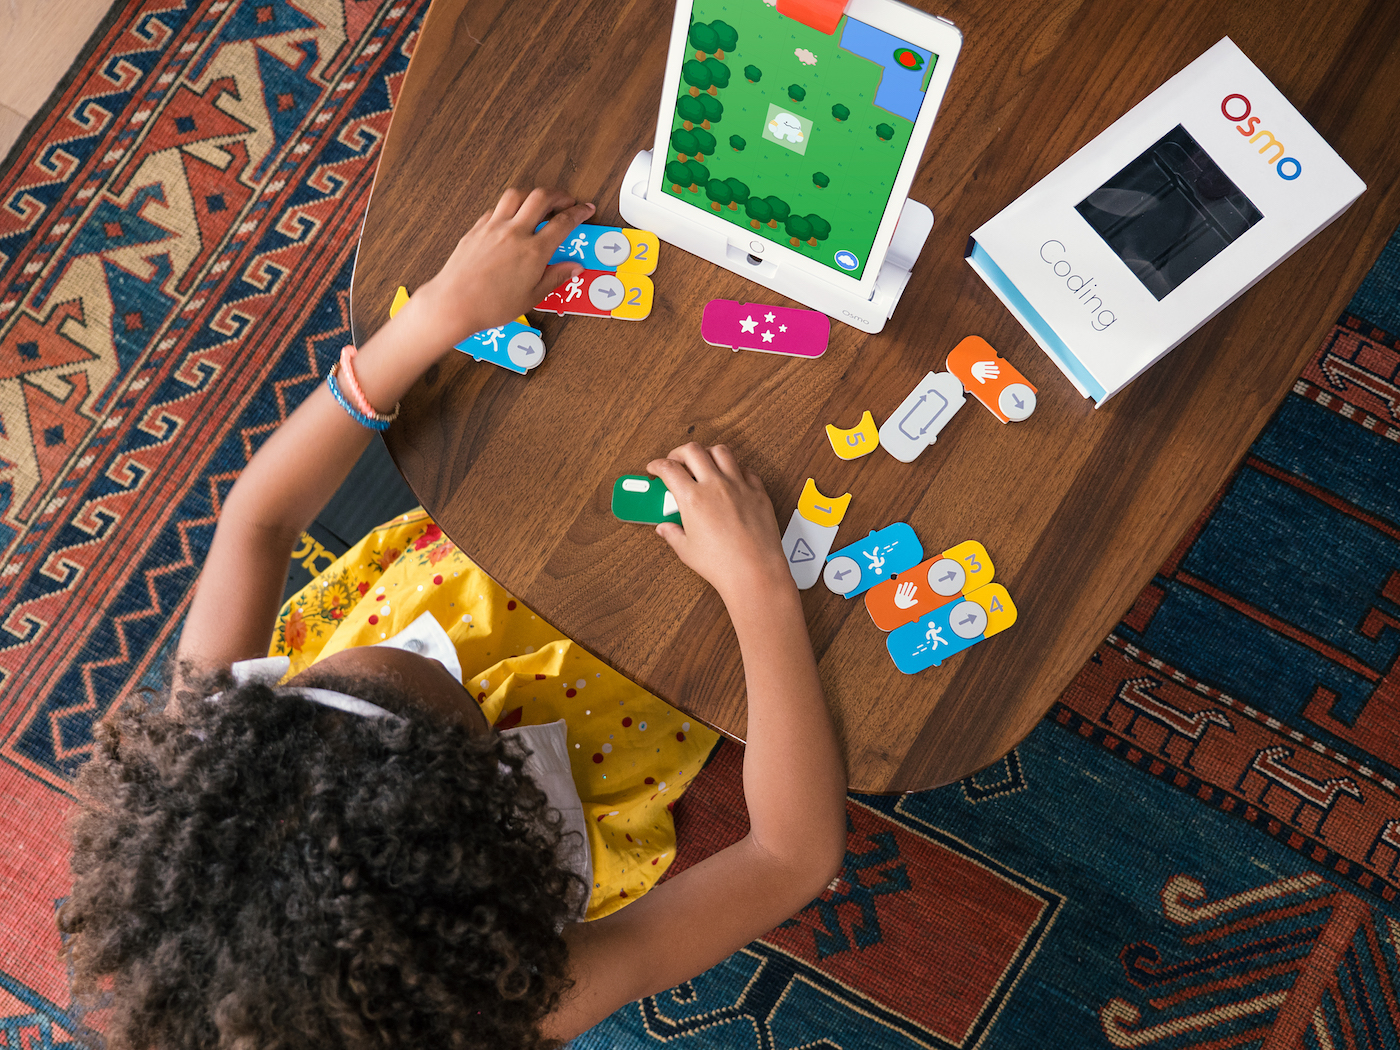 Osmo's blocks are like Lego for coding